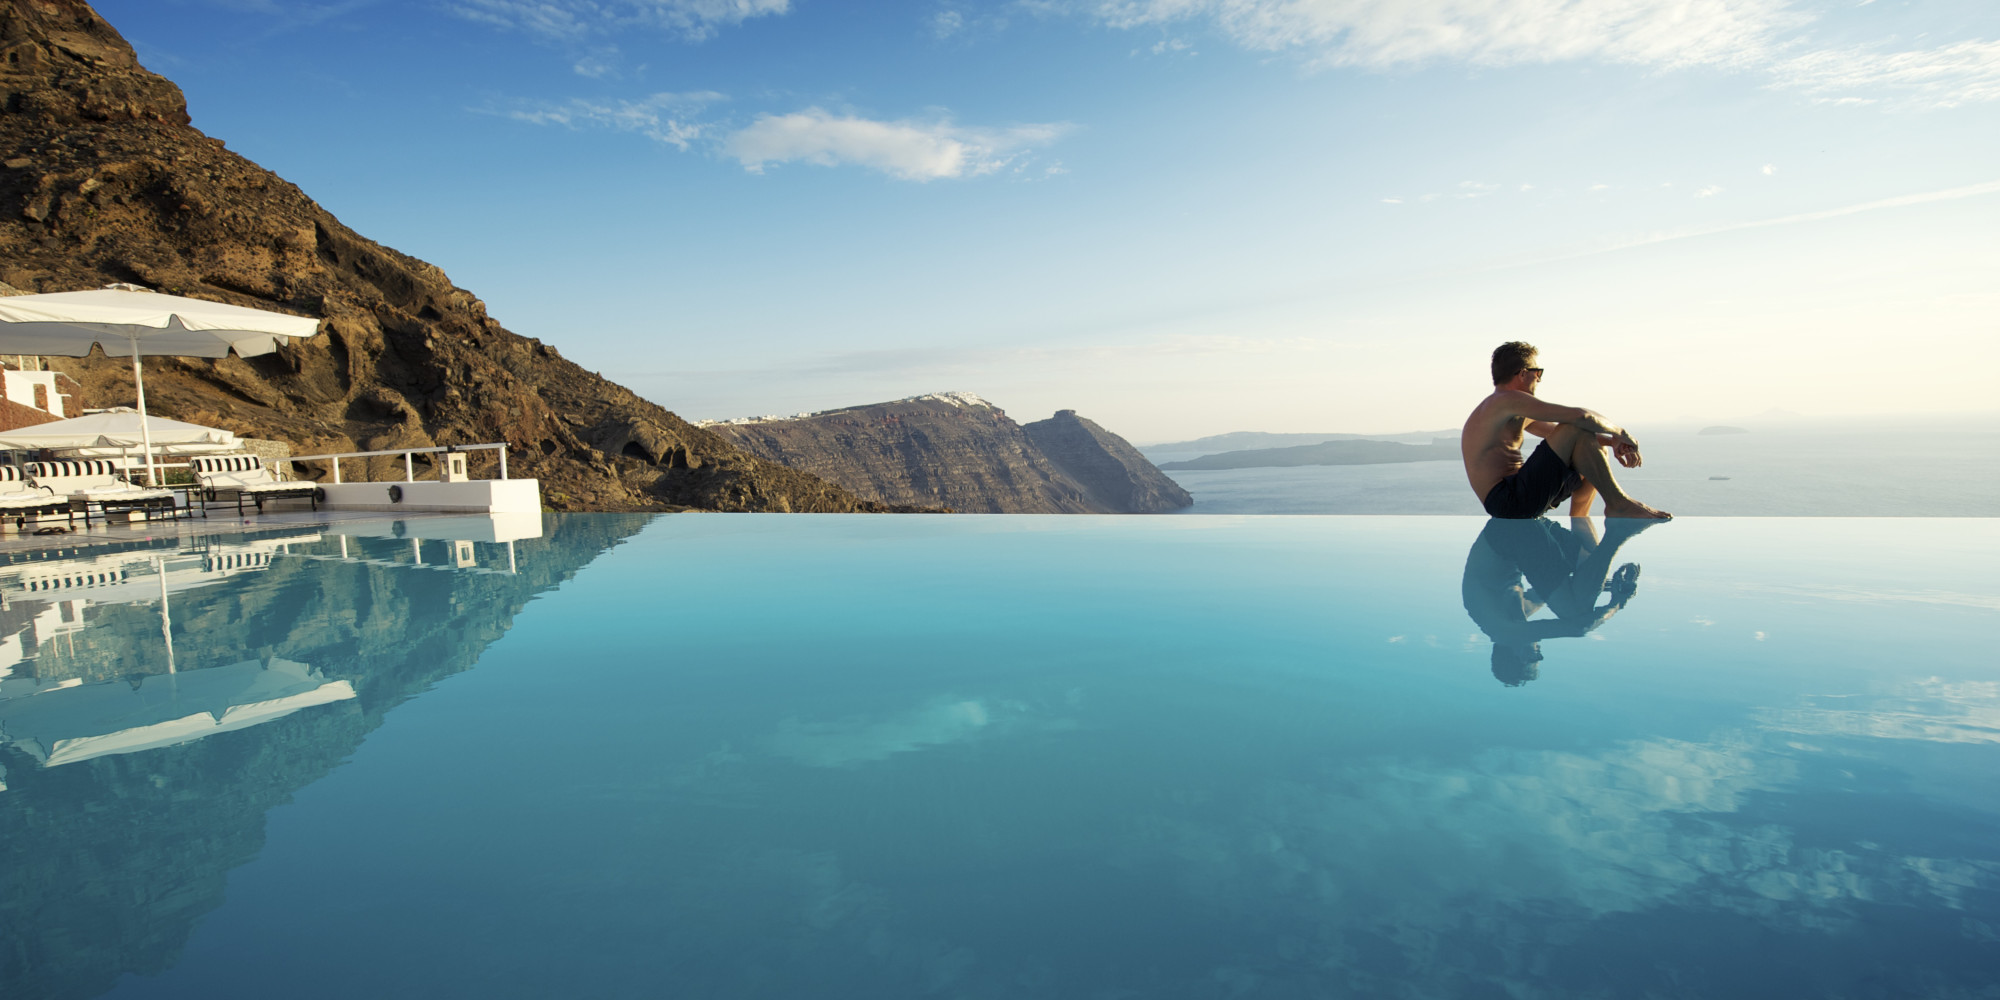 infinity pool 8 infinity pools you have to see to believe | huffpost UCPHOFW